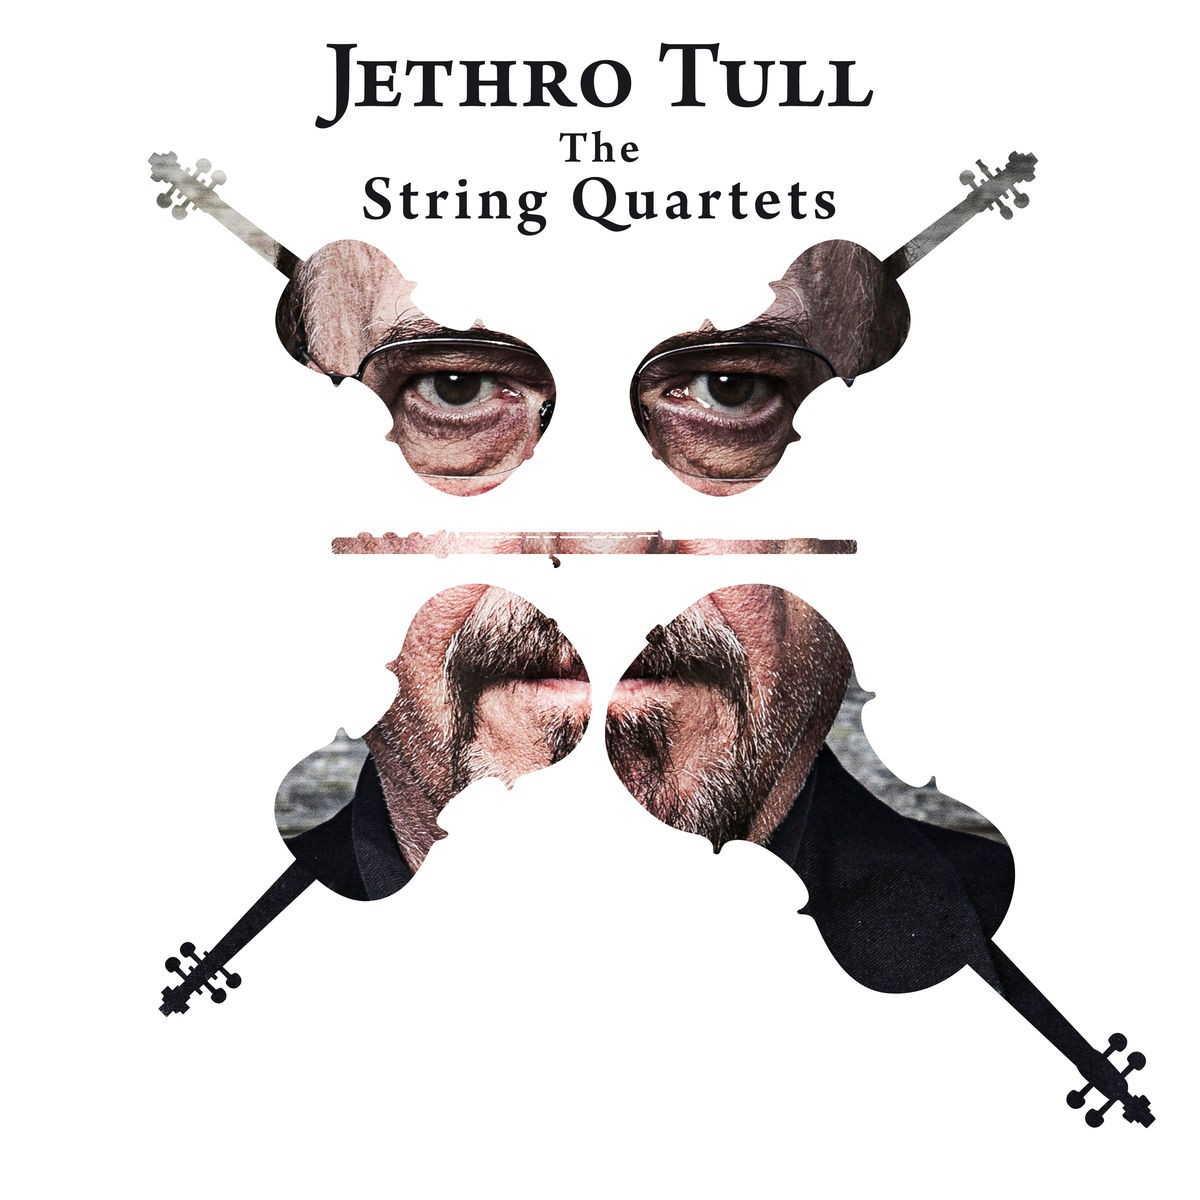 Jethro Tull - The String Quartets VINYL - 5053827573